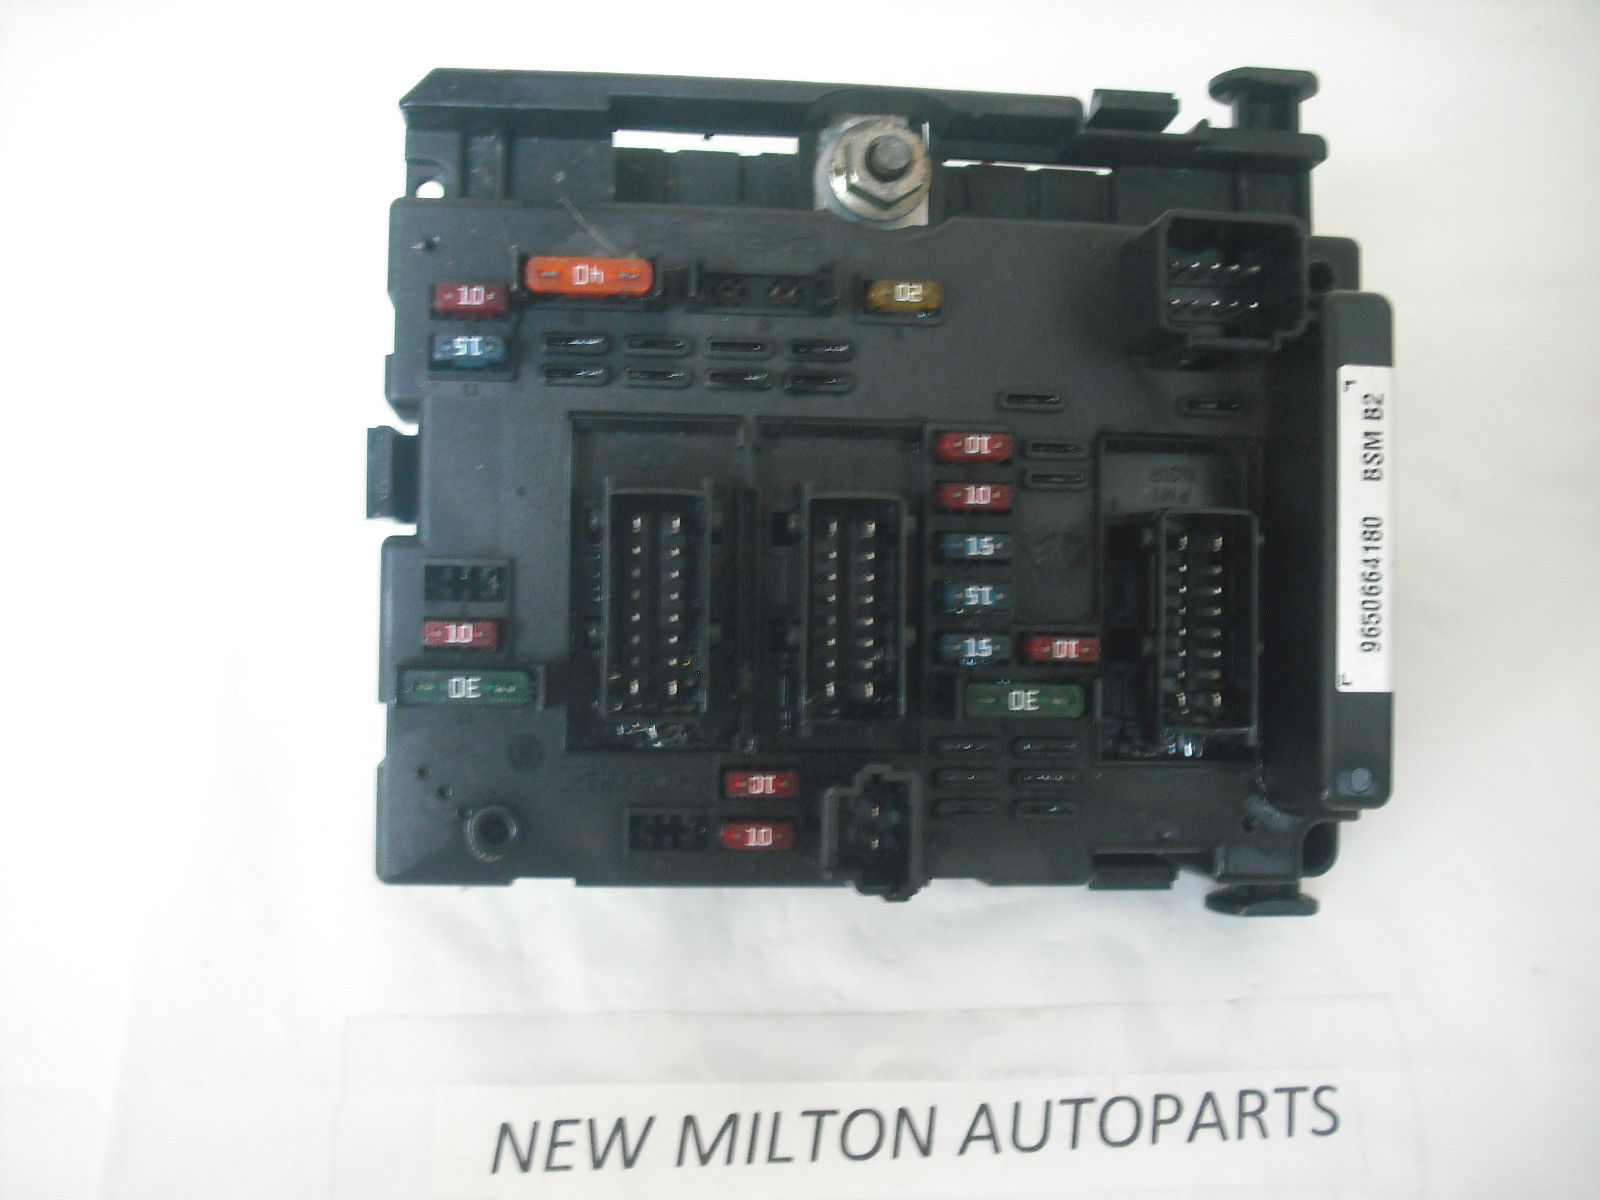 Peugeot 307 Fuse Box Location Hatchback 39 Wiring Diagram Images 107 A Genuine 207 14 16 20 Hdi Etc Engine Bay Control Module